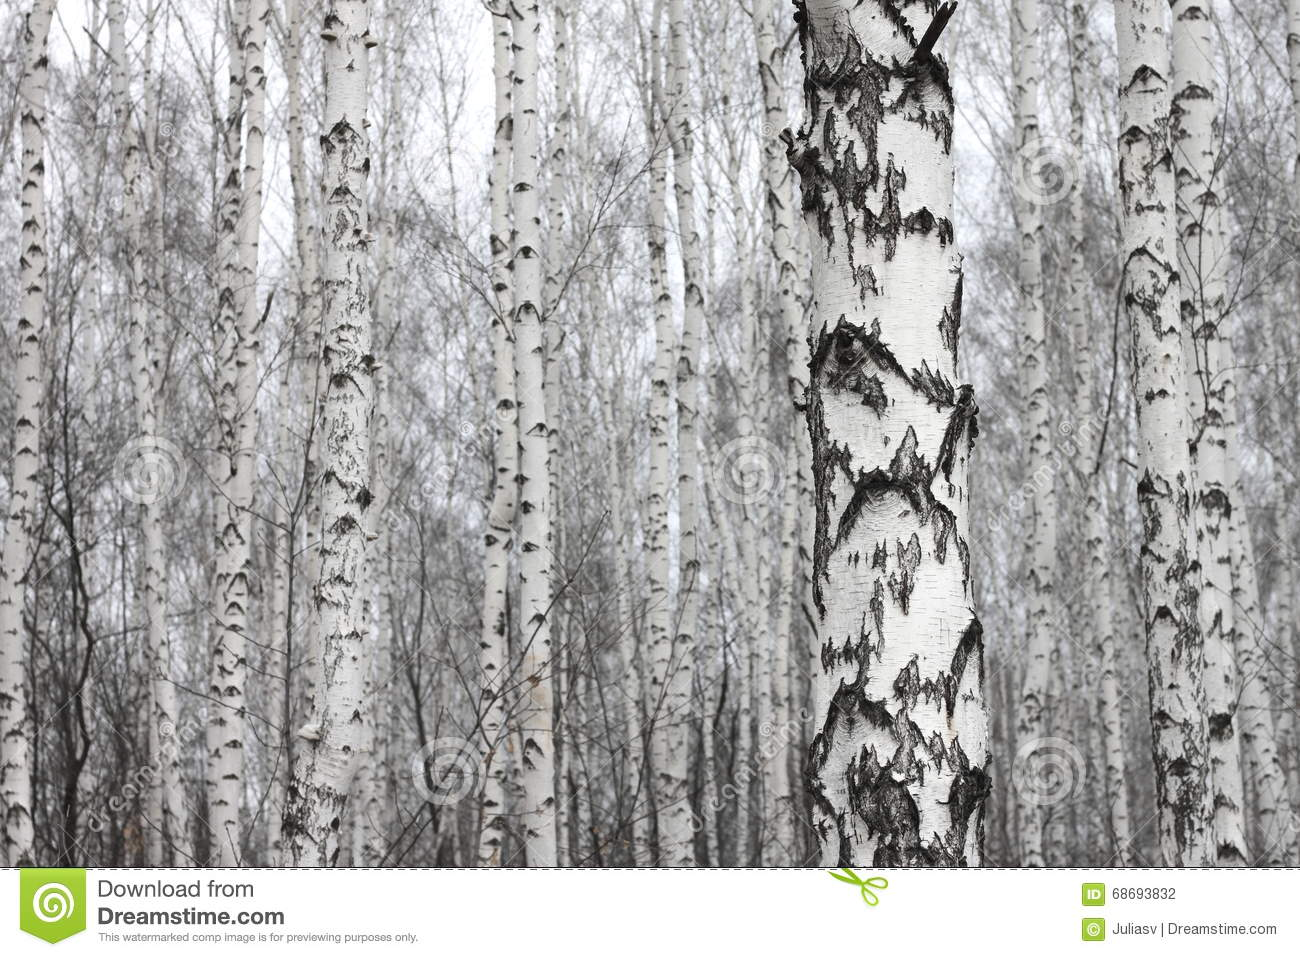 Birch forest, many beautiful birches in early spring